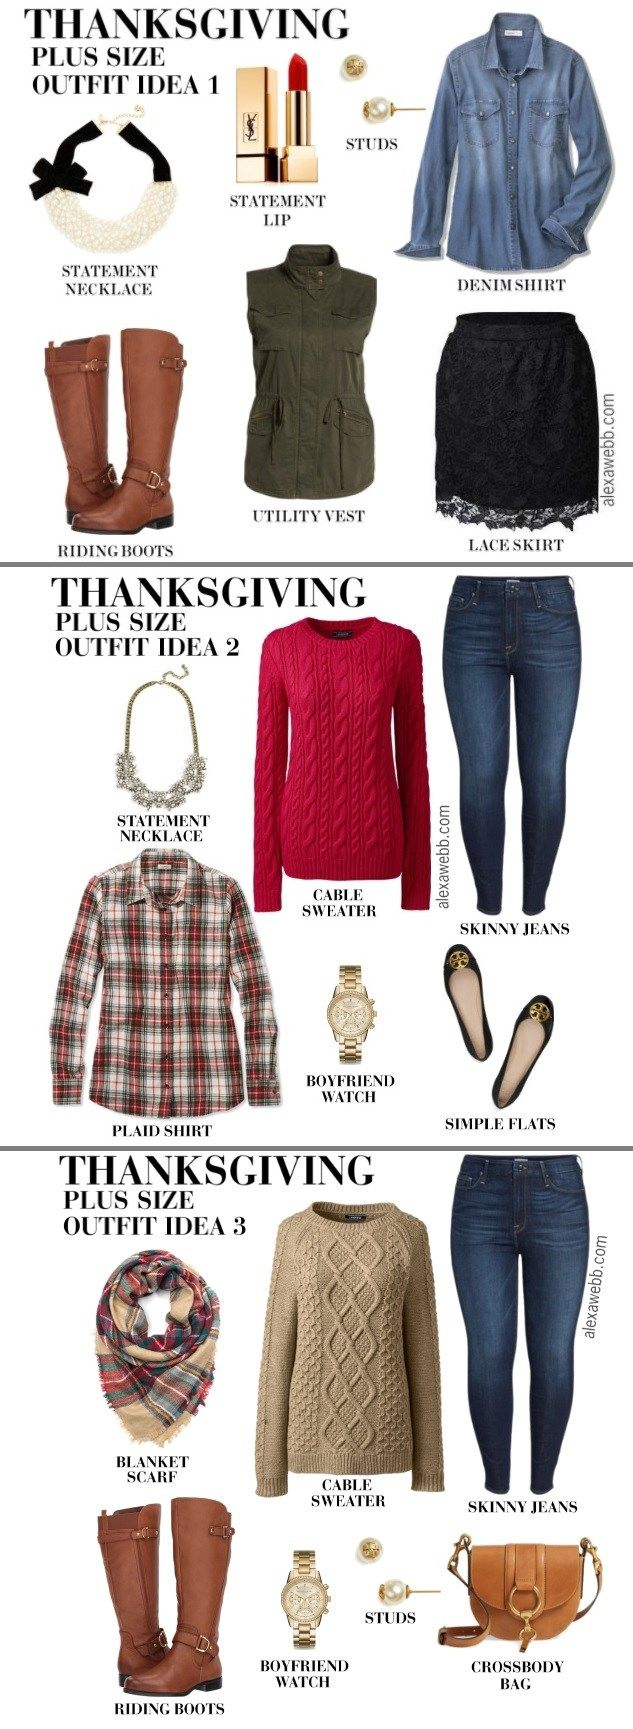 Plus Size Thanksgiving Outfits #thanksgivingoutfit